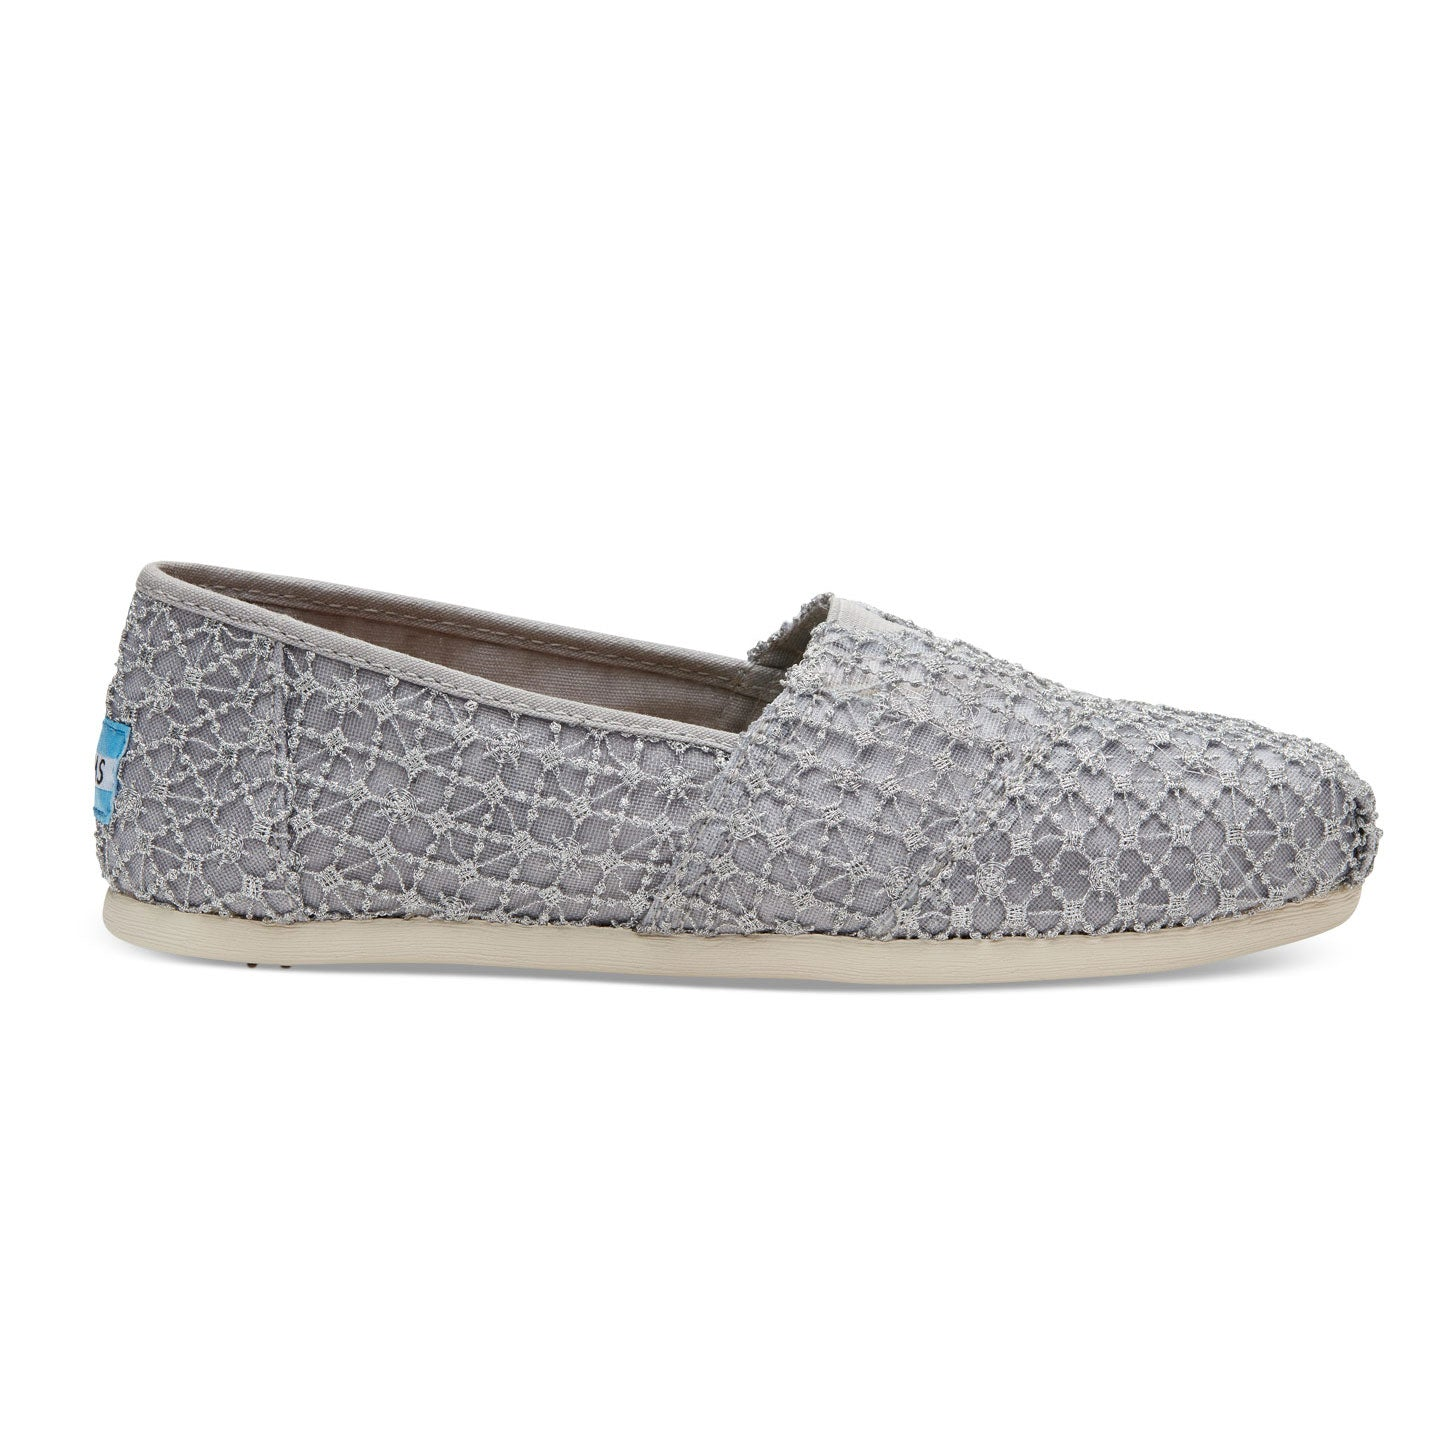 6defde8be3e TOMS Womens Classics Silver Crochet Lace Slip On Espadrilles